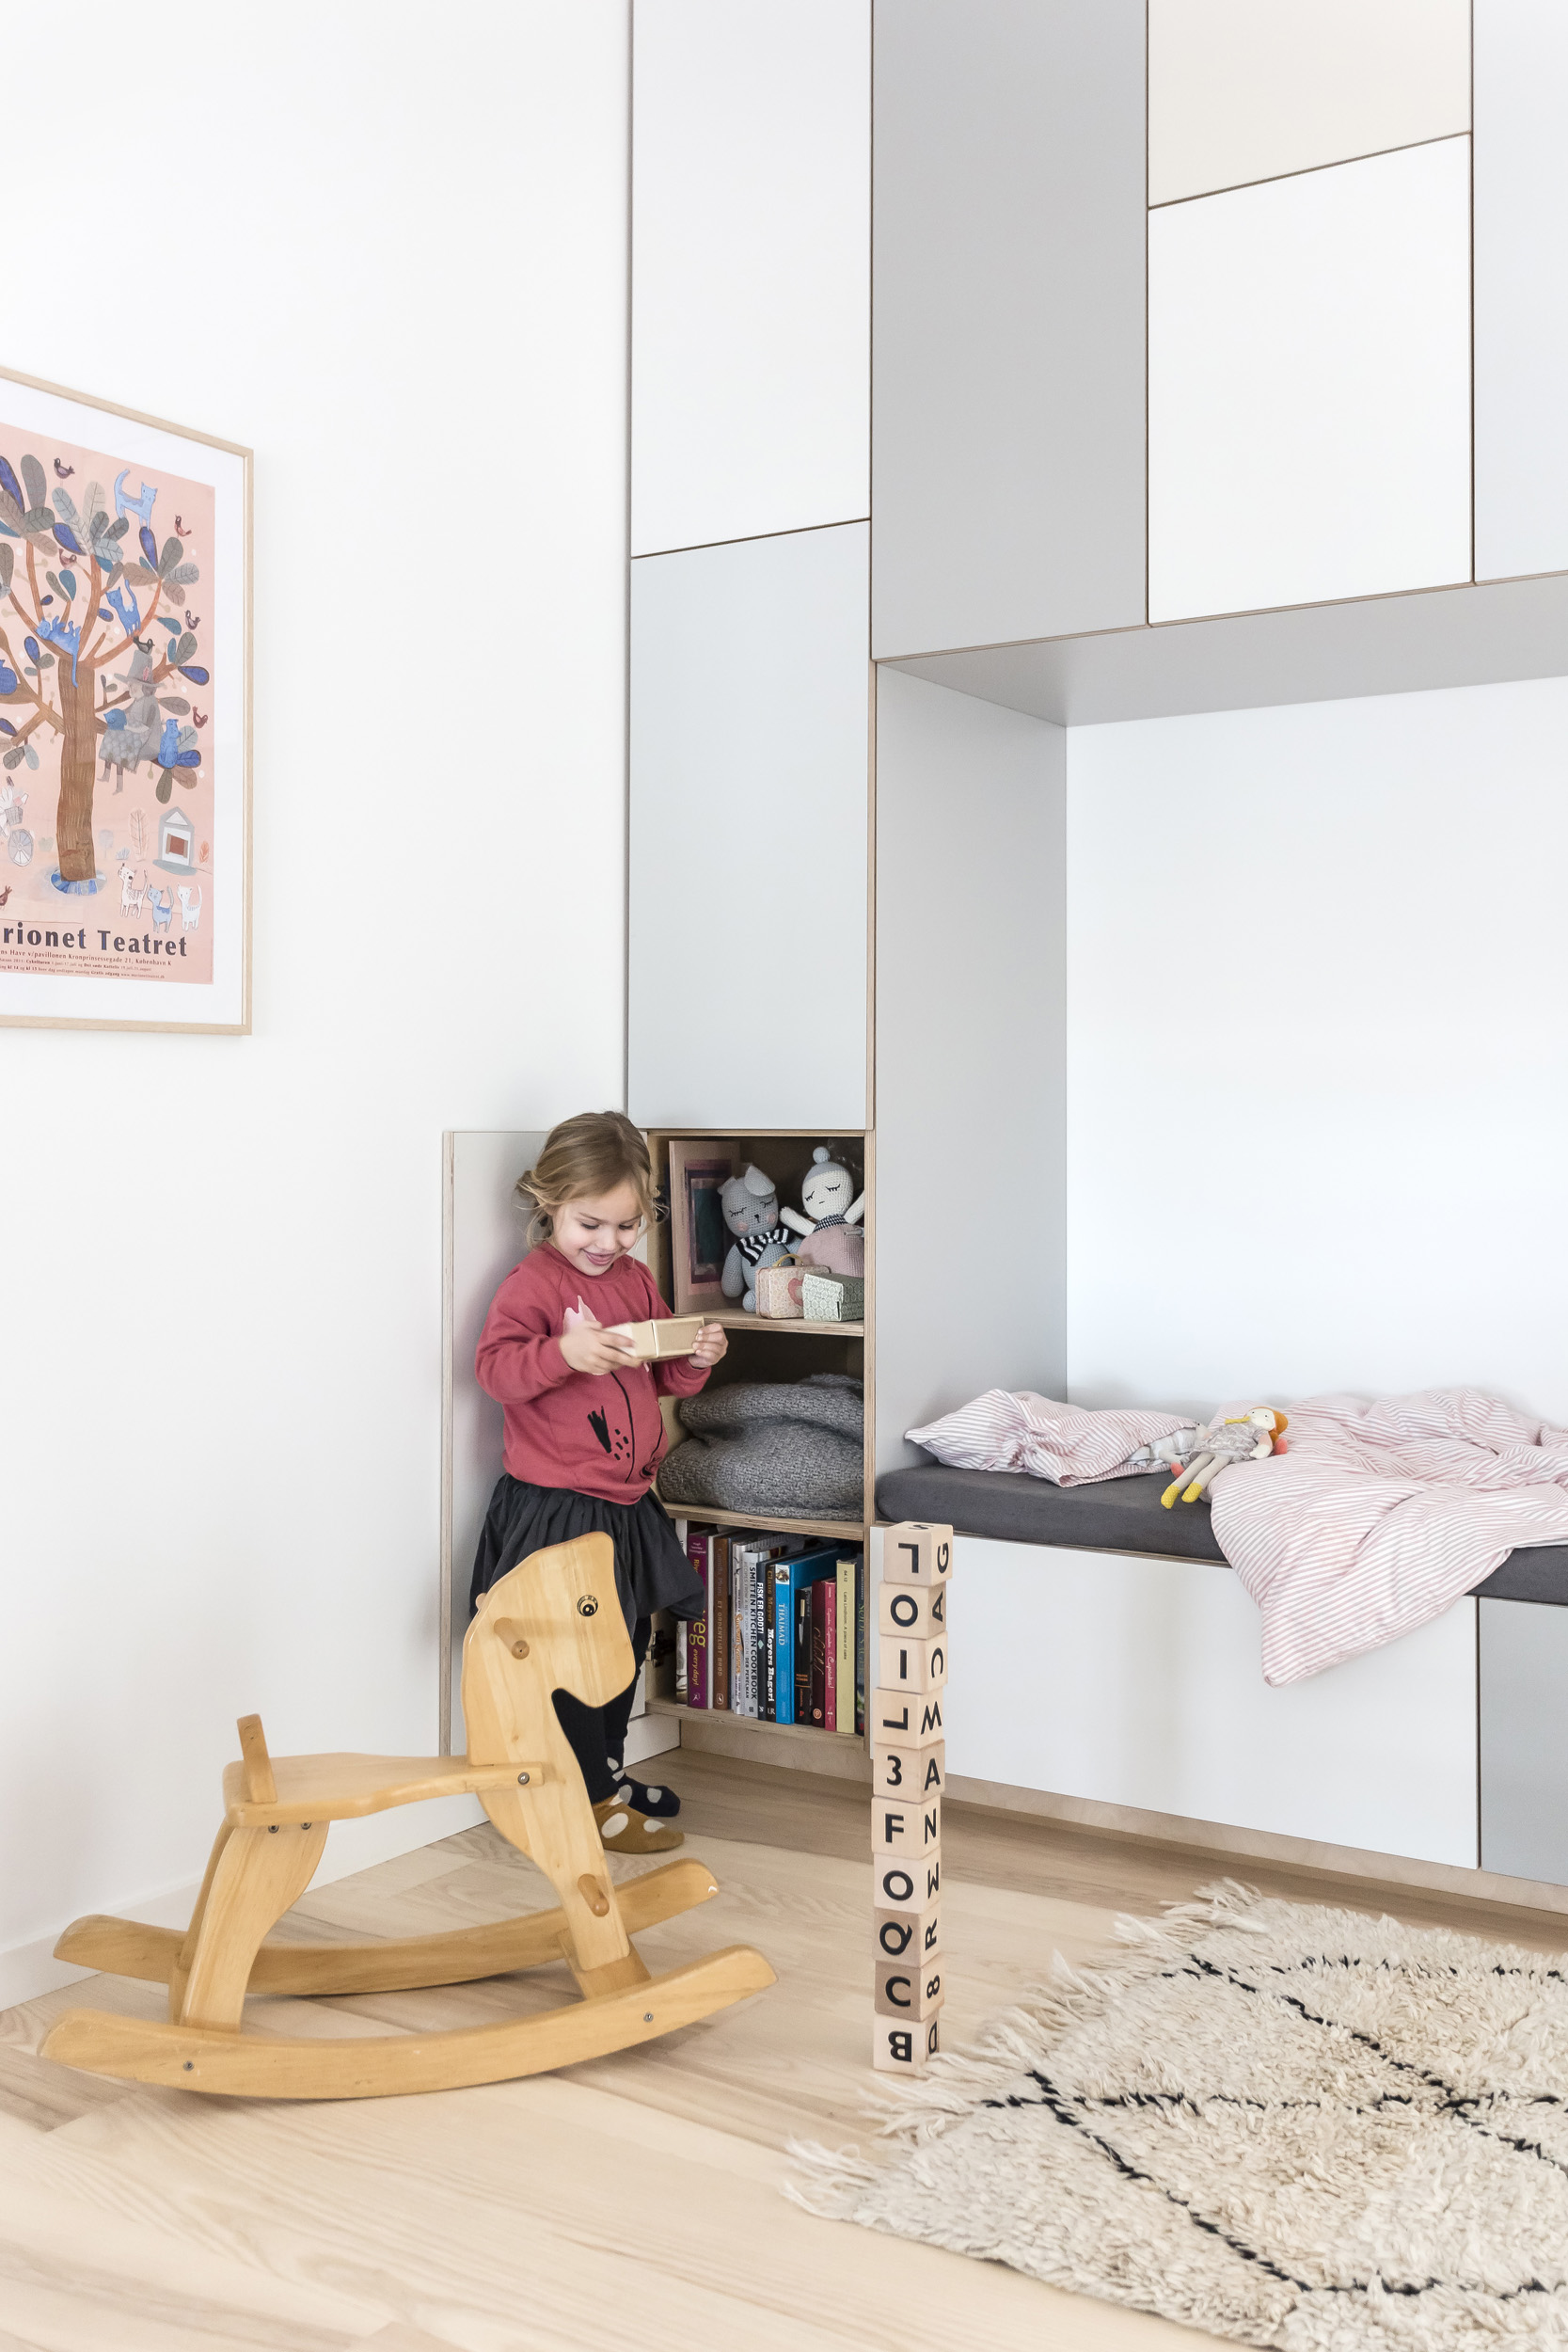 0459-a4v1-kids-room-bed-wardrobe-storage-multifunctional-shades of grey-minimal-stay-project-2500x.jpg